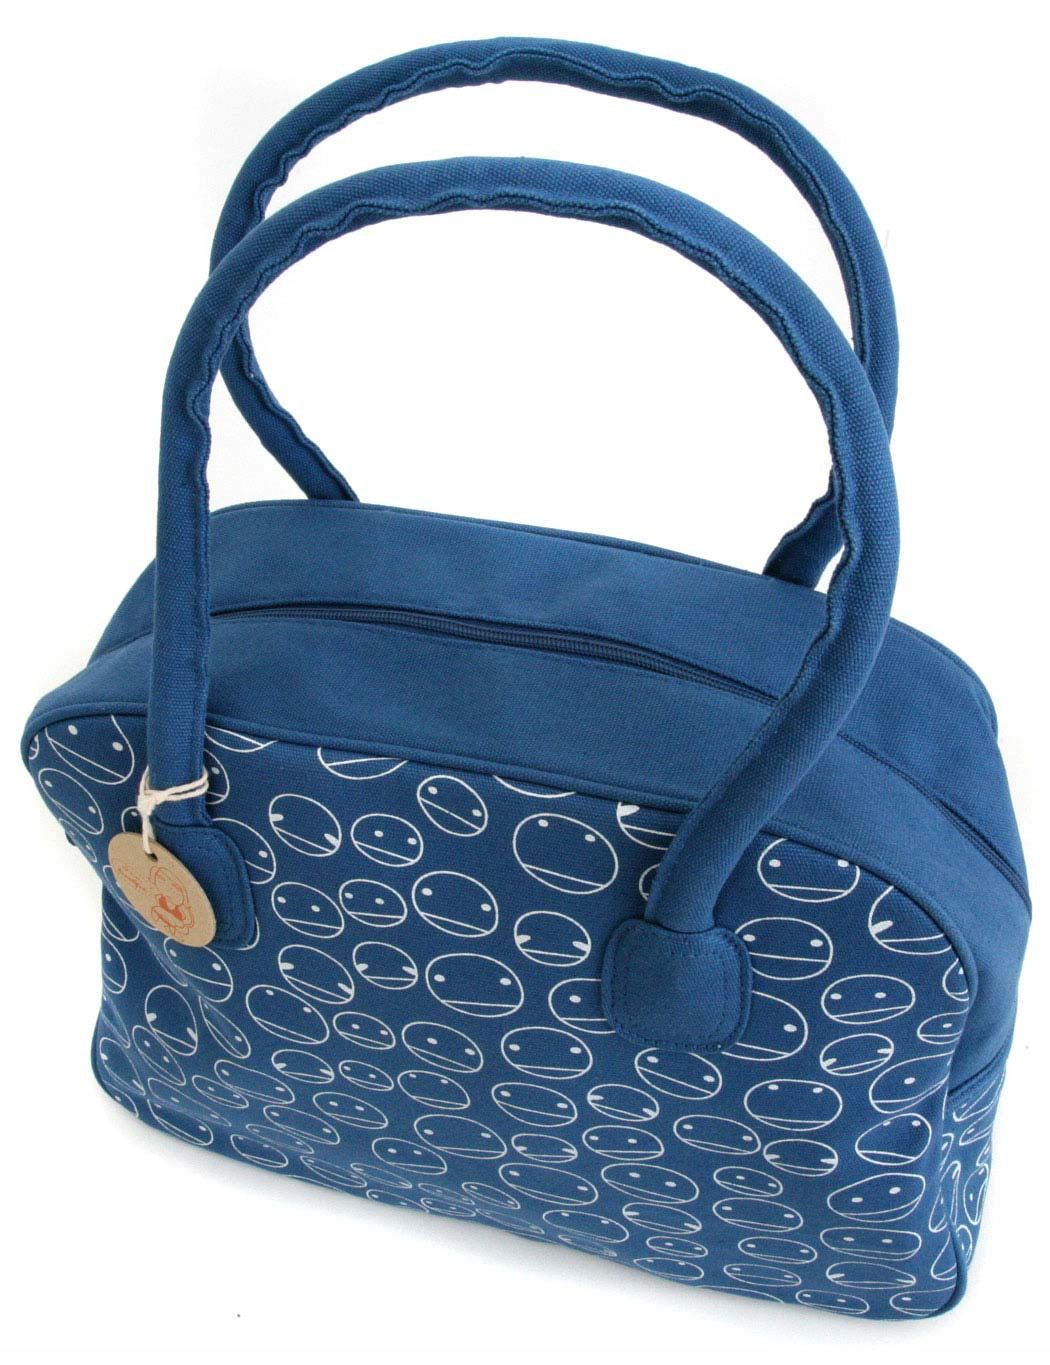 Noodoll Smiley Bowling Bag - Blue